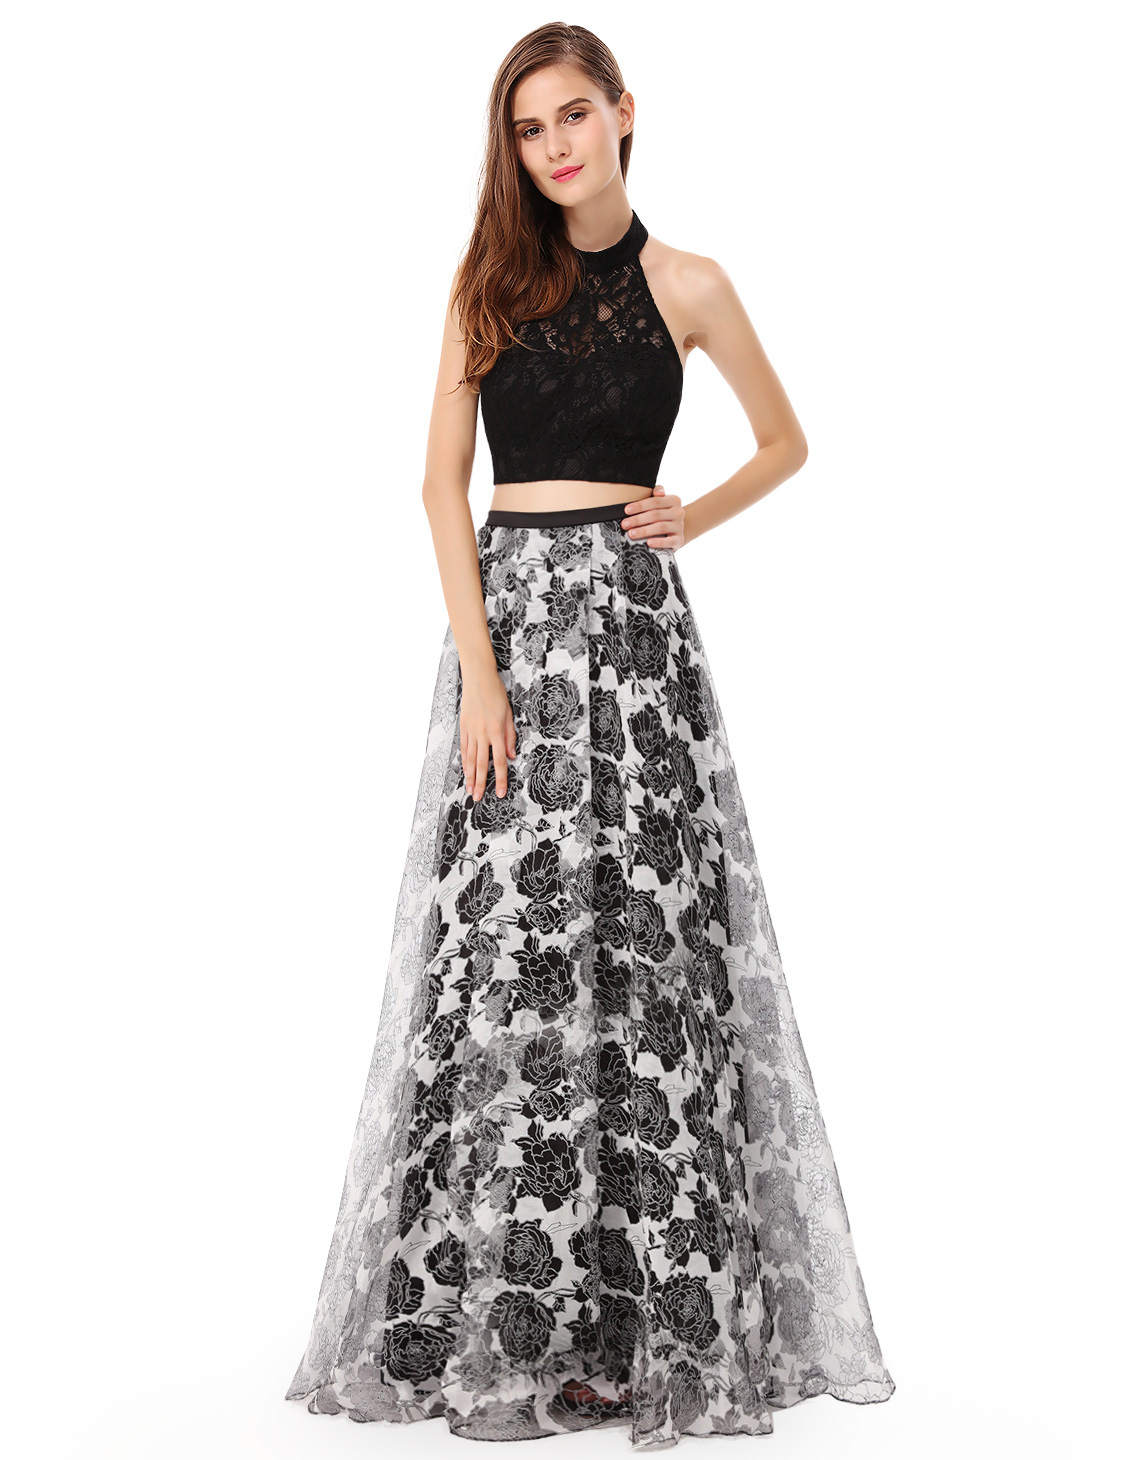 Find great deals on eBay for Long Spring Dresses in Elegant Dresses for Women. Shop with confidence. Find great deals on eBay for Long Spring Dresses in Elegant Dresses for Women. Shop with confidence. Skip to main content. eBay: Shop by category. Shop by .